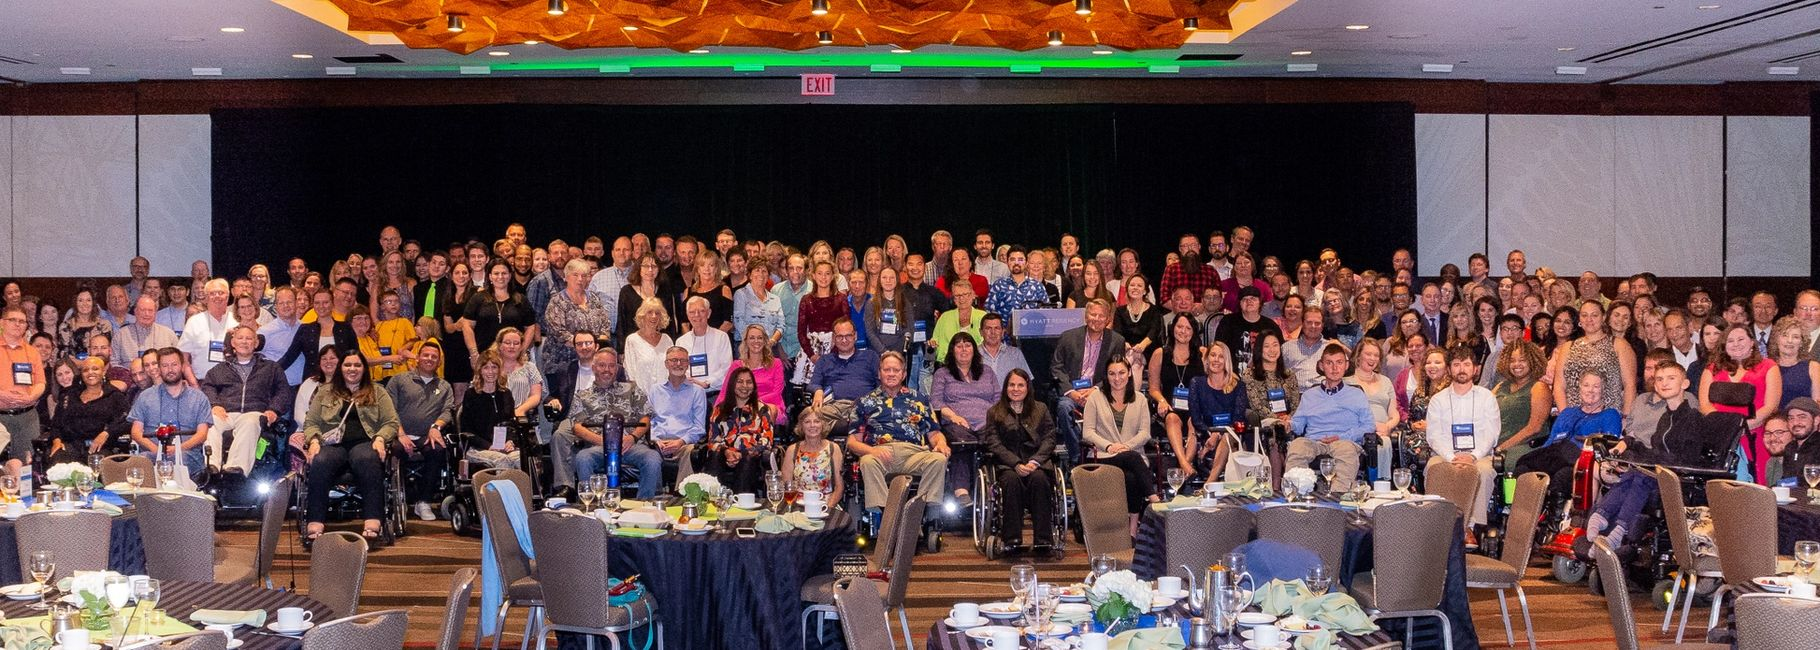 Over 400 attendees were present for the first National Limb Girdle Muscular Dystrophy Conference!